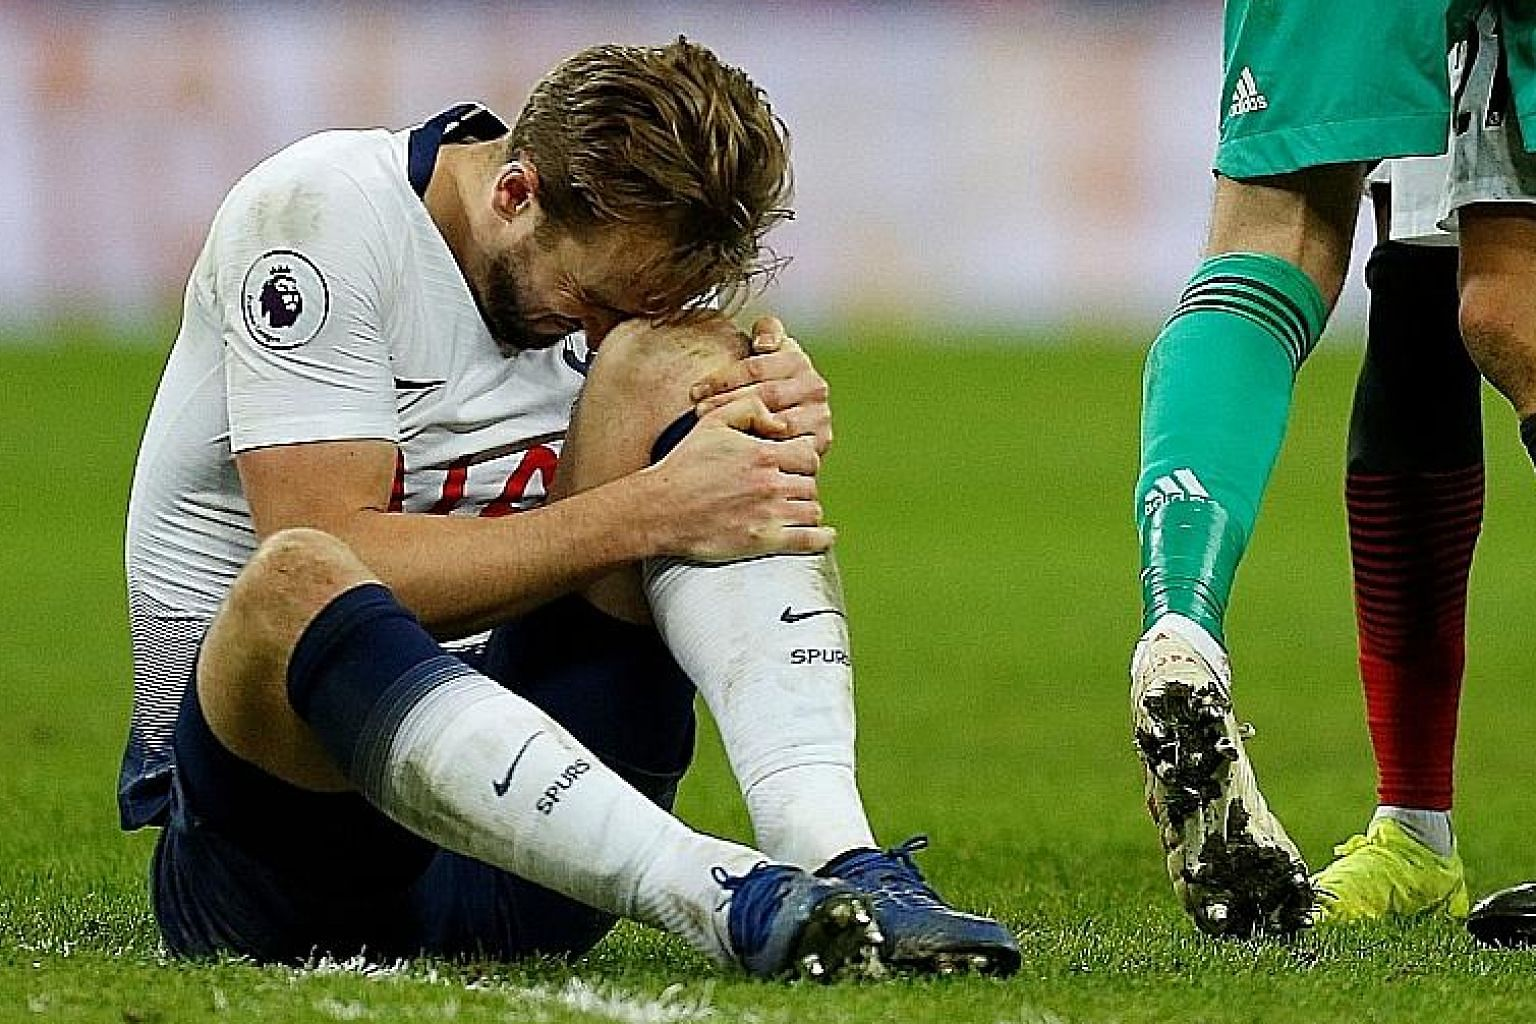 Tottenham striker Harry Kane holding his leg in pain during the 1-0 Premier League defeat by Manchester United on Sunday. The club have confirmed that he is out with ankle ligament damage.